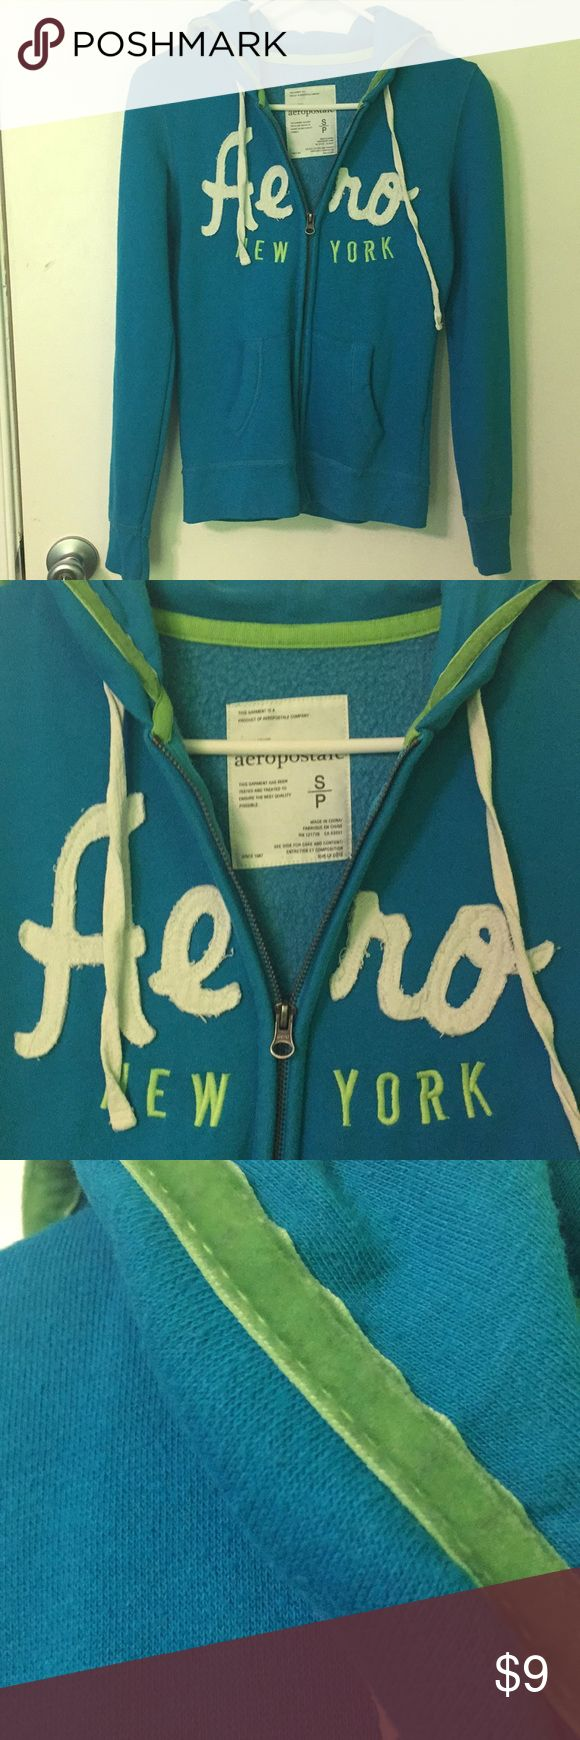 Women's Aero Hoodie Women's hoodie. Worn a few times and in good condition. Colors: Blue, white writing, green outlining. Size: Small Aeropostale Tops Sweatshirts & Hoodies